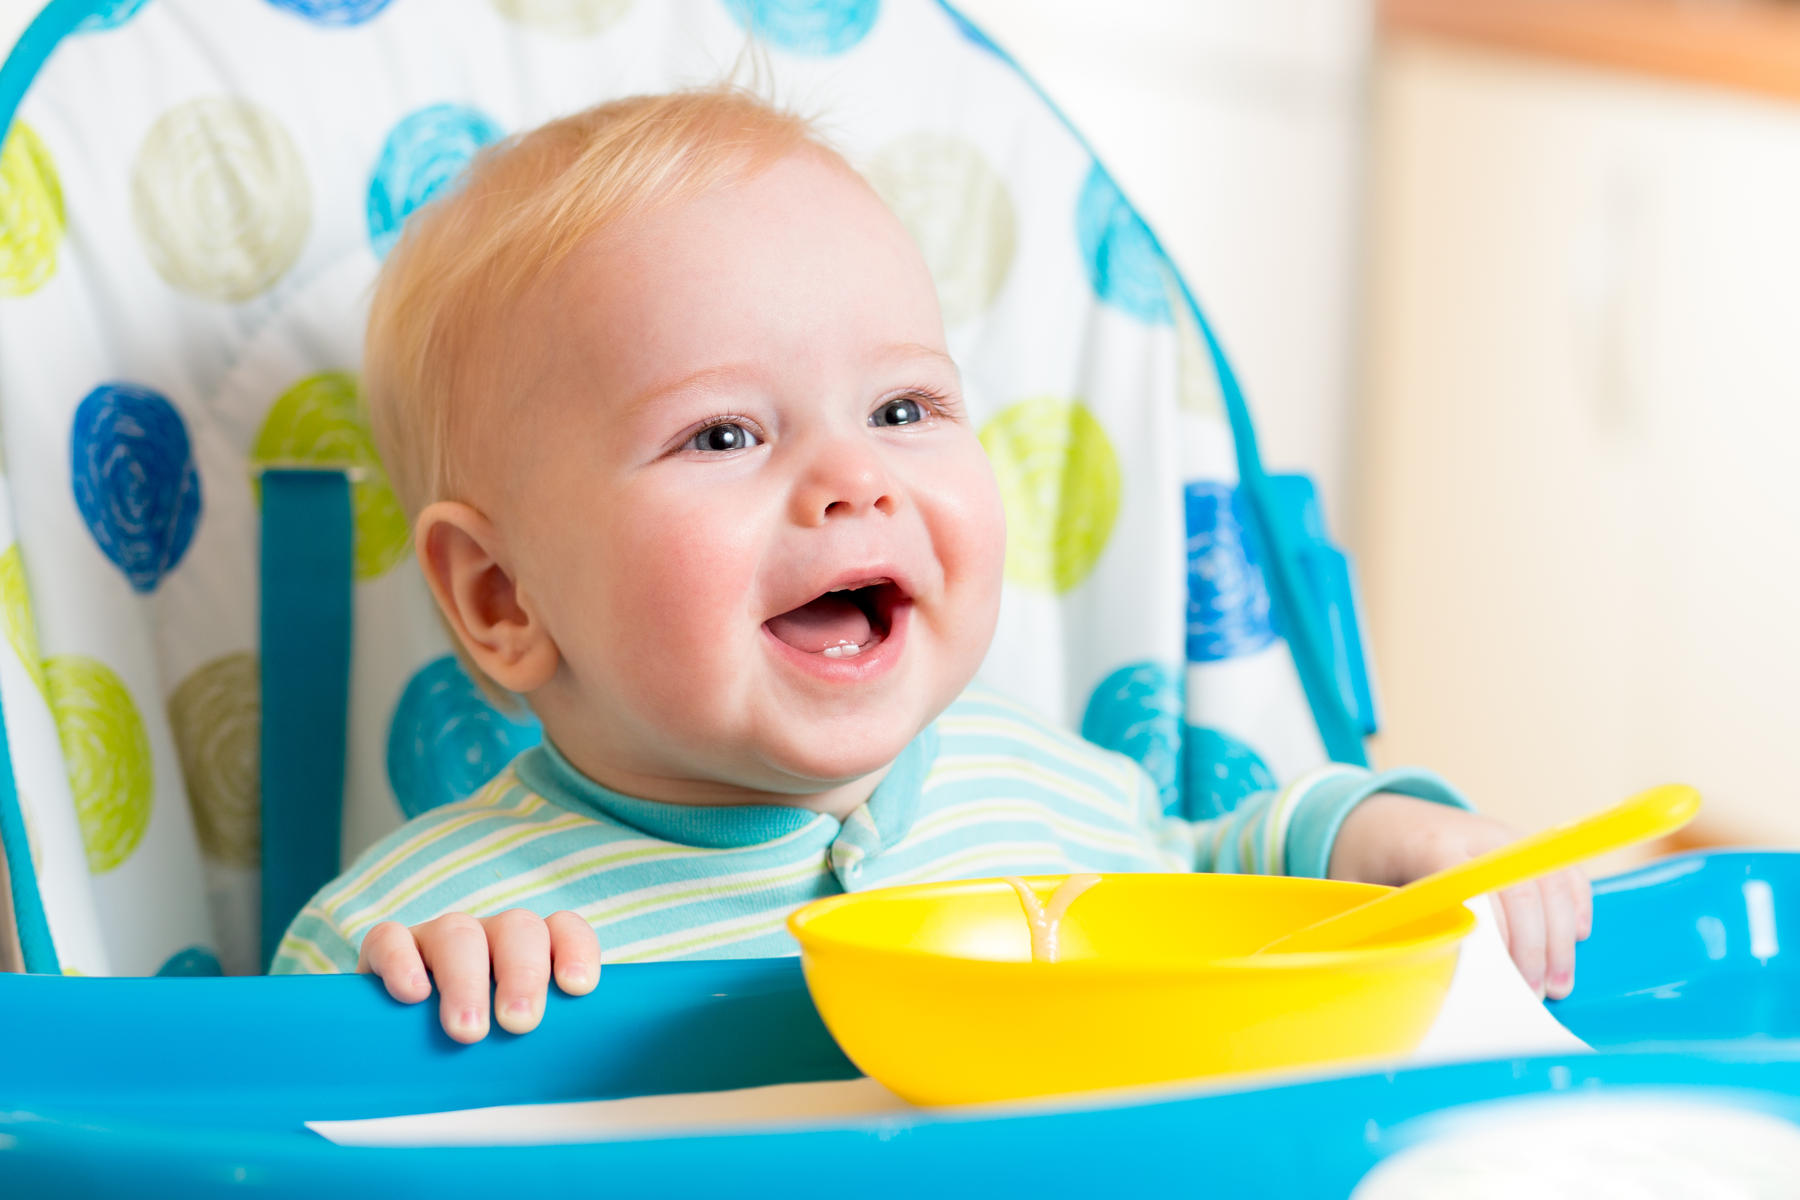 20 foods to feed your baby before age 1 | parents